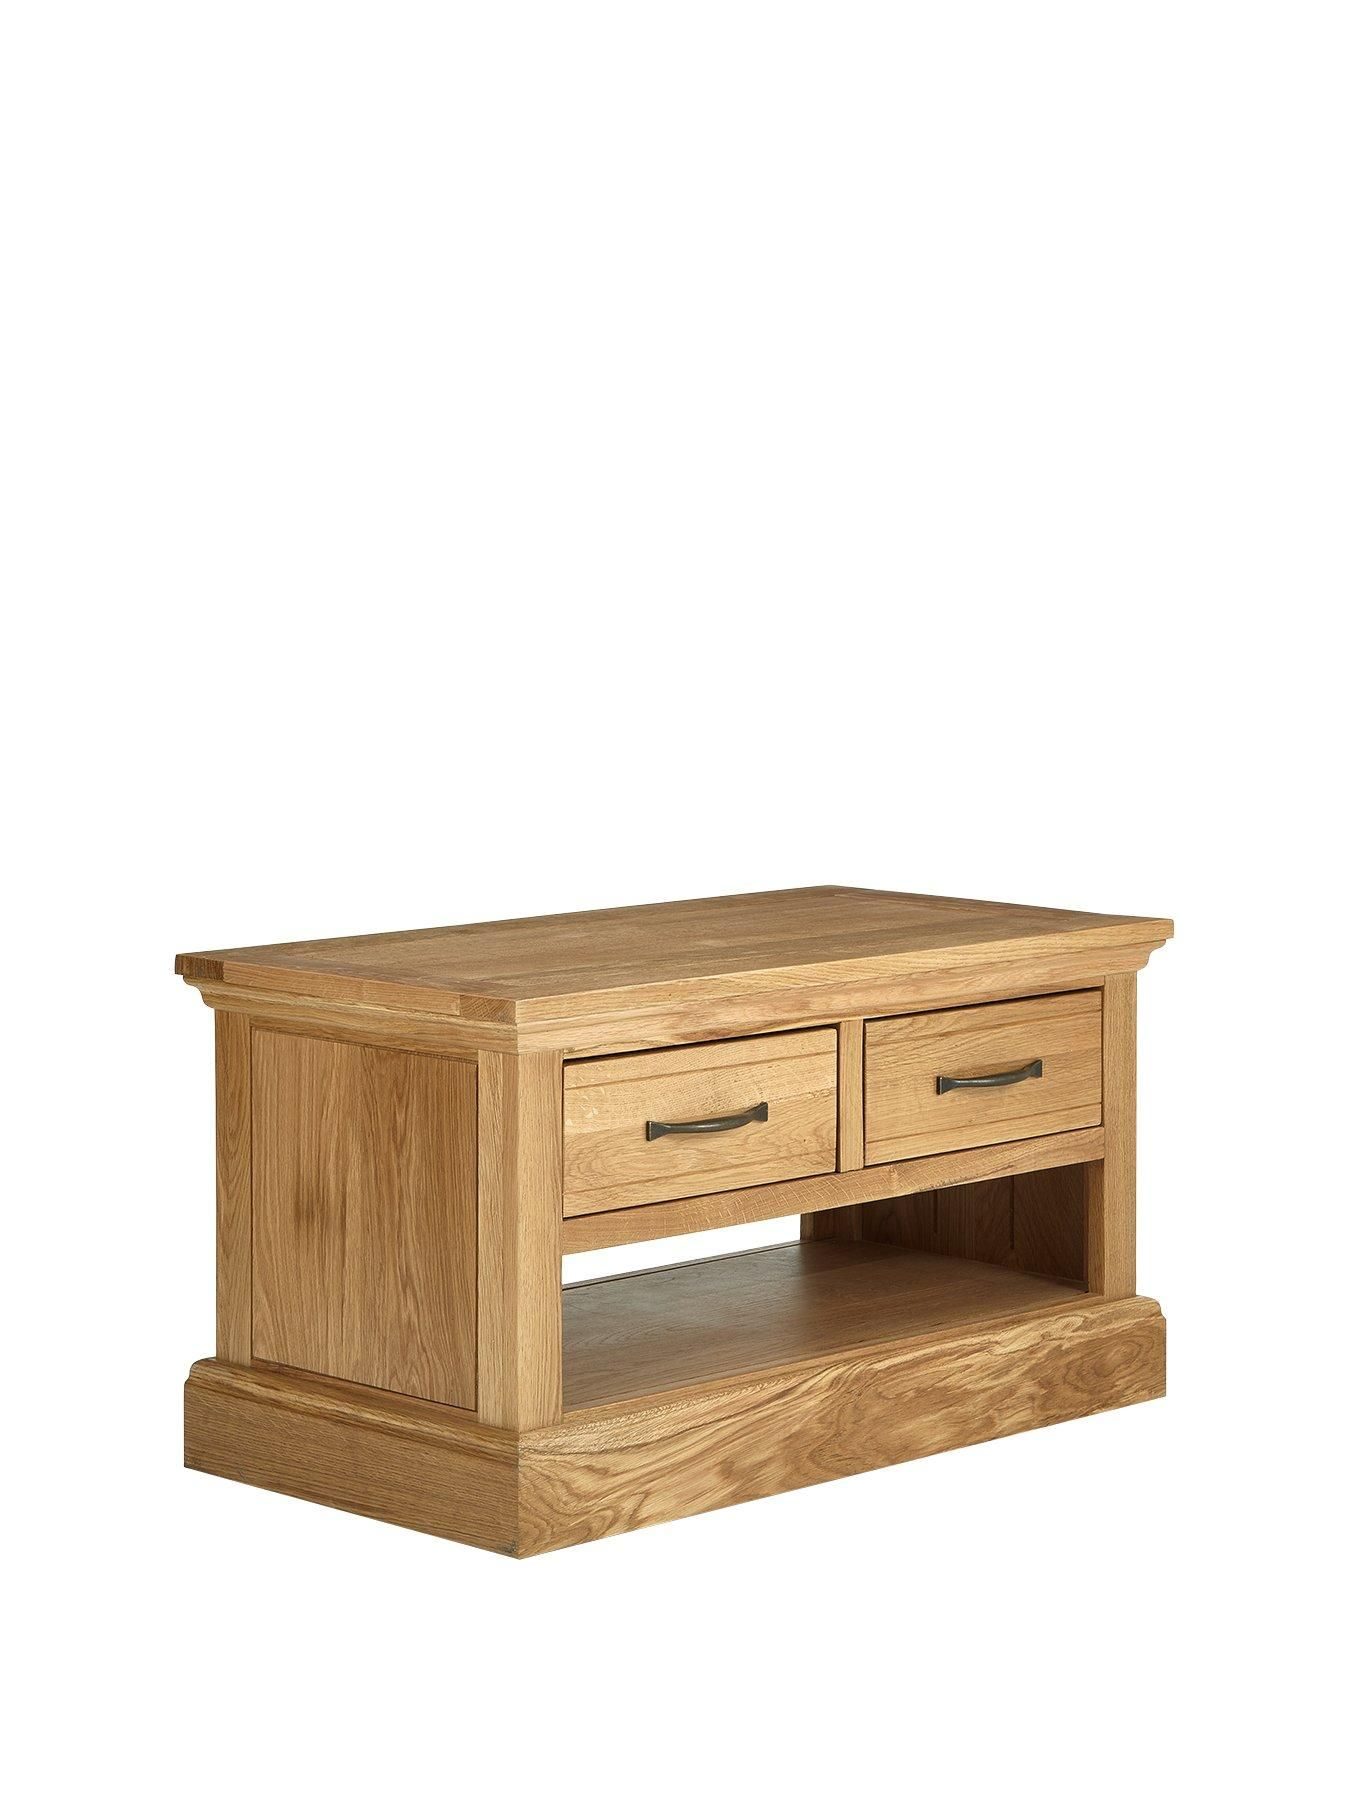 Luxe Collection Kingston 100 Solid Wood Ready Assembled Coffee Table Oak In 2020 Solid Wood Wood Kingston